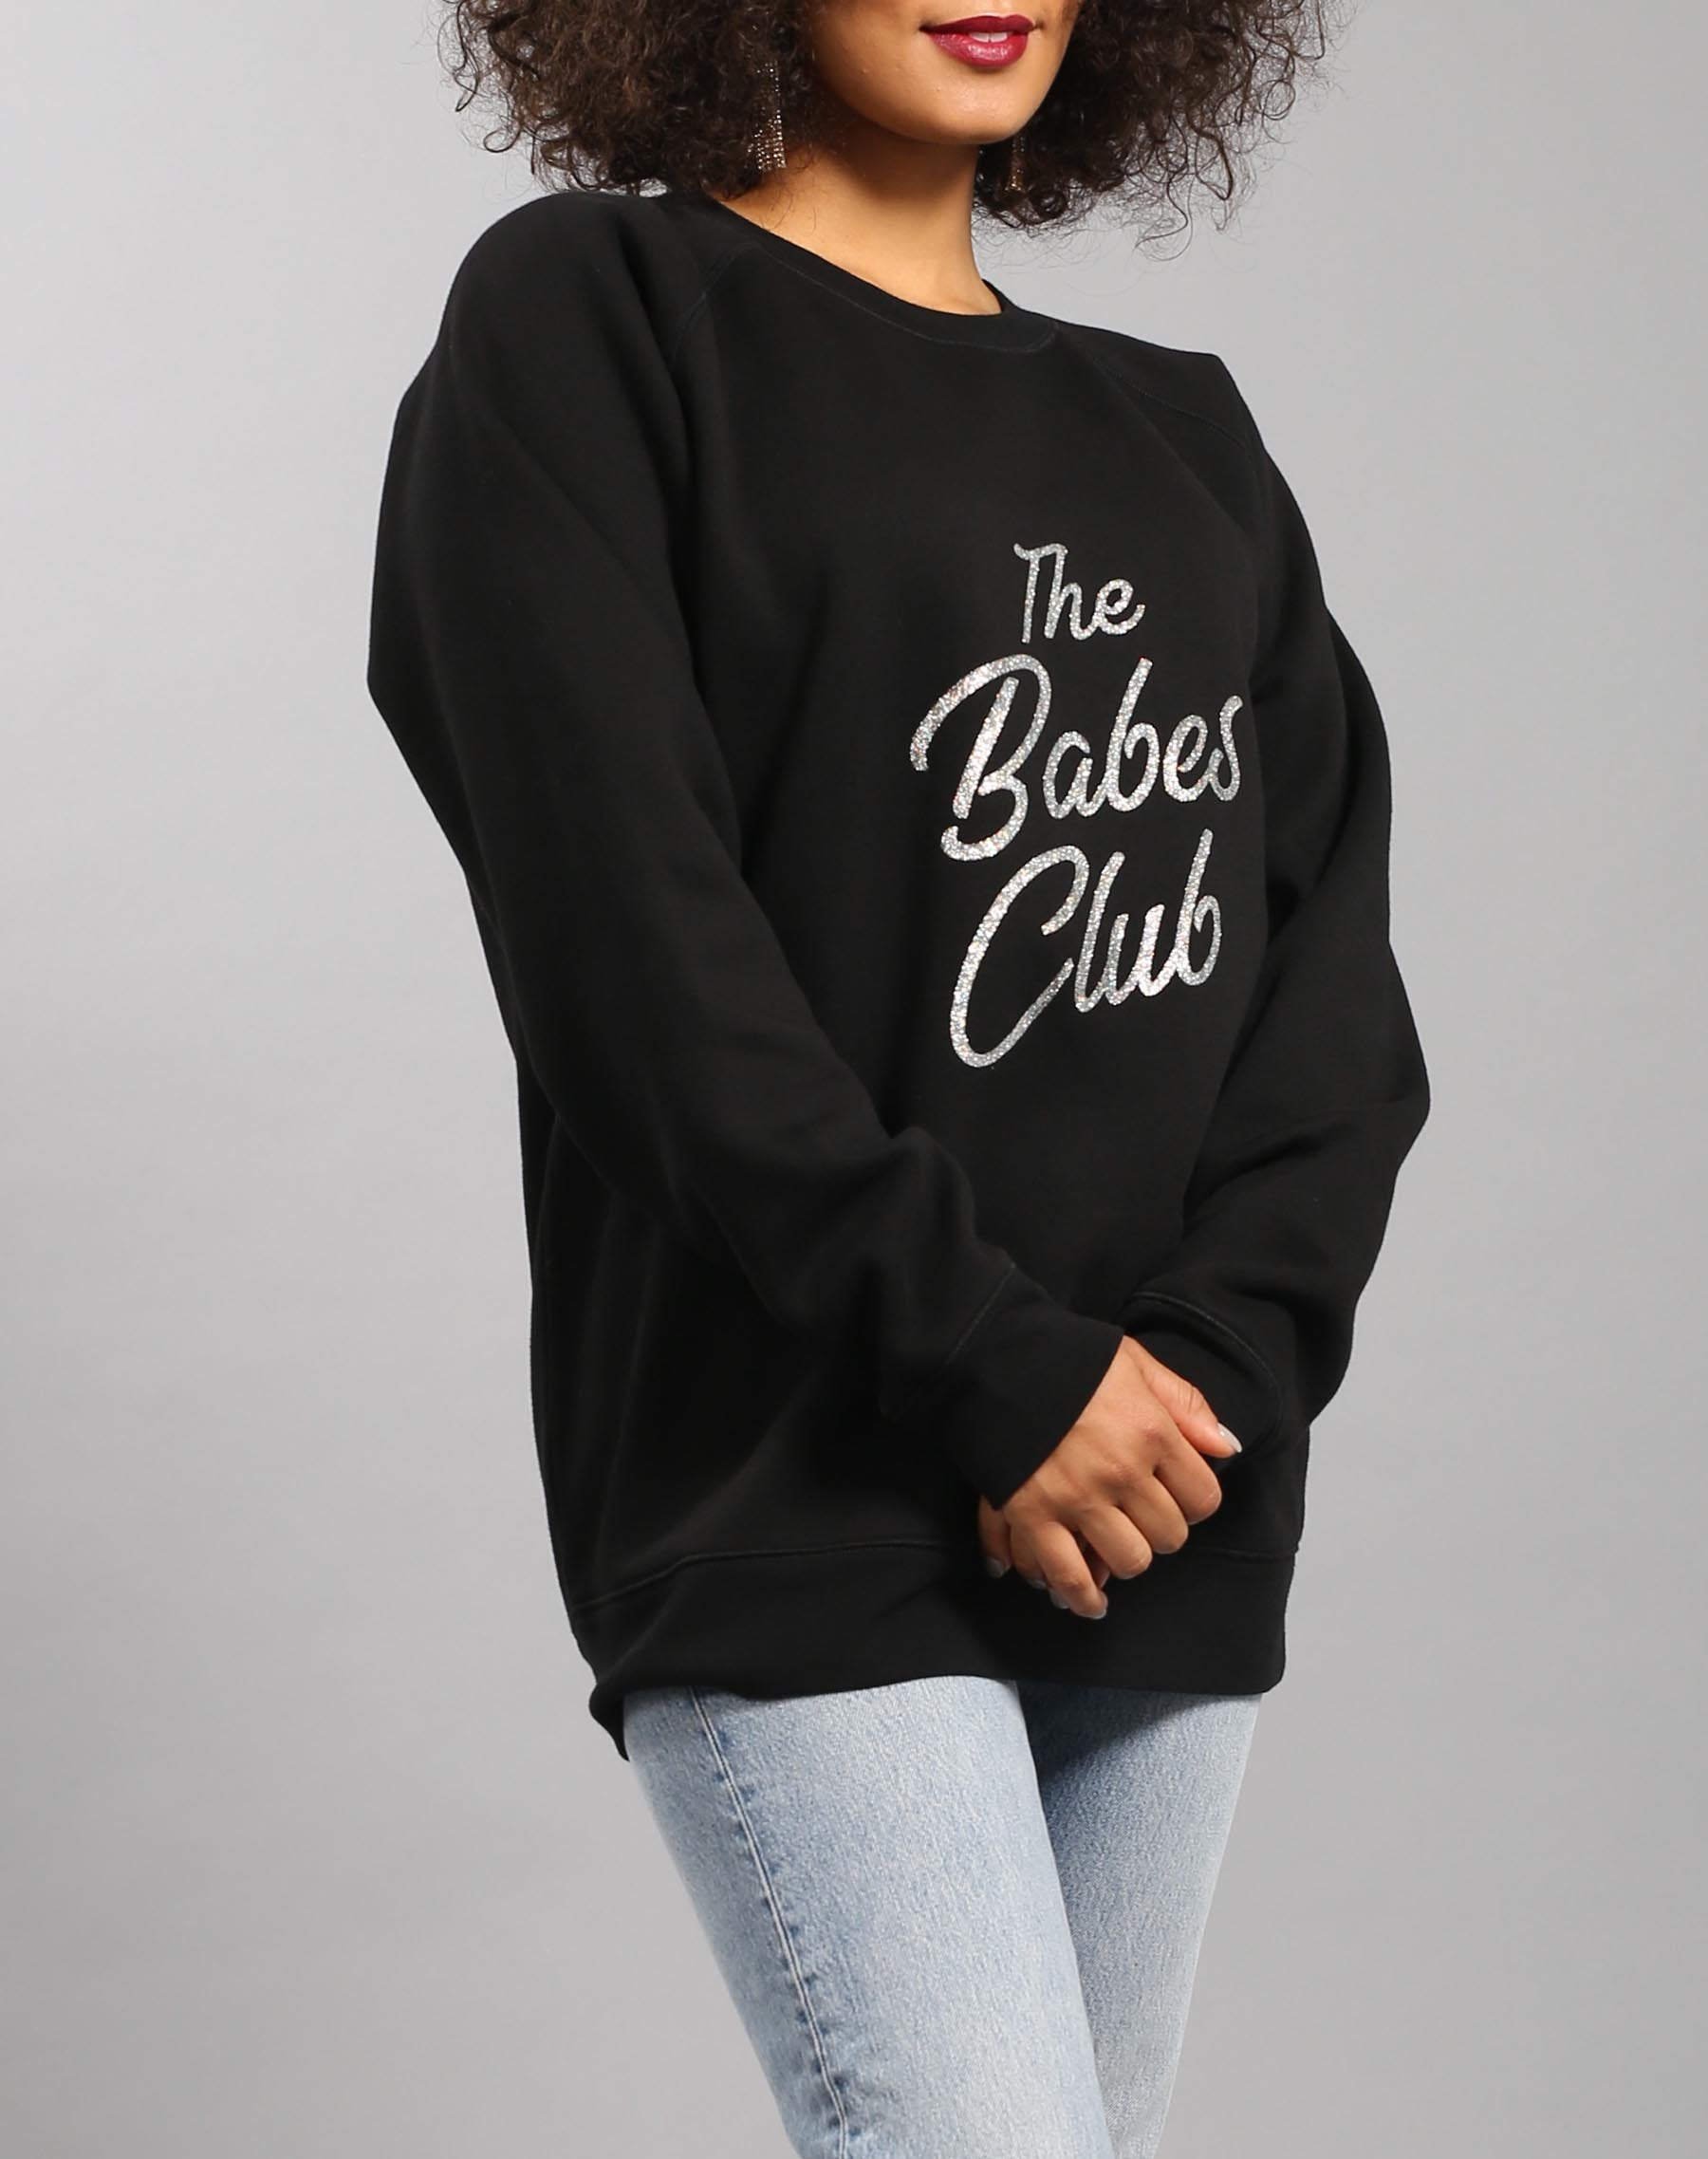 """BABES CLUB"" Big Sister Crew Neck Sweatshirt 